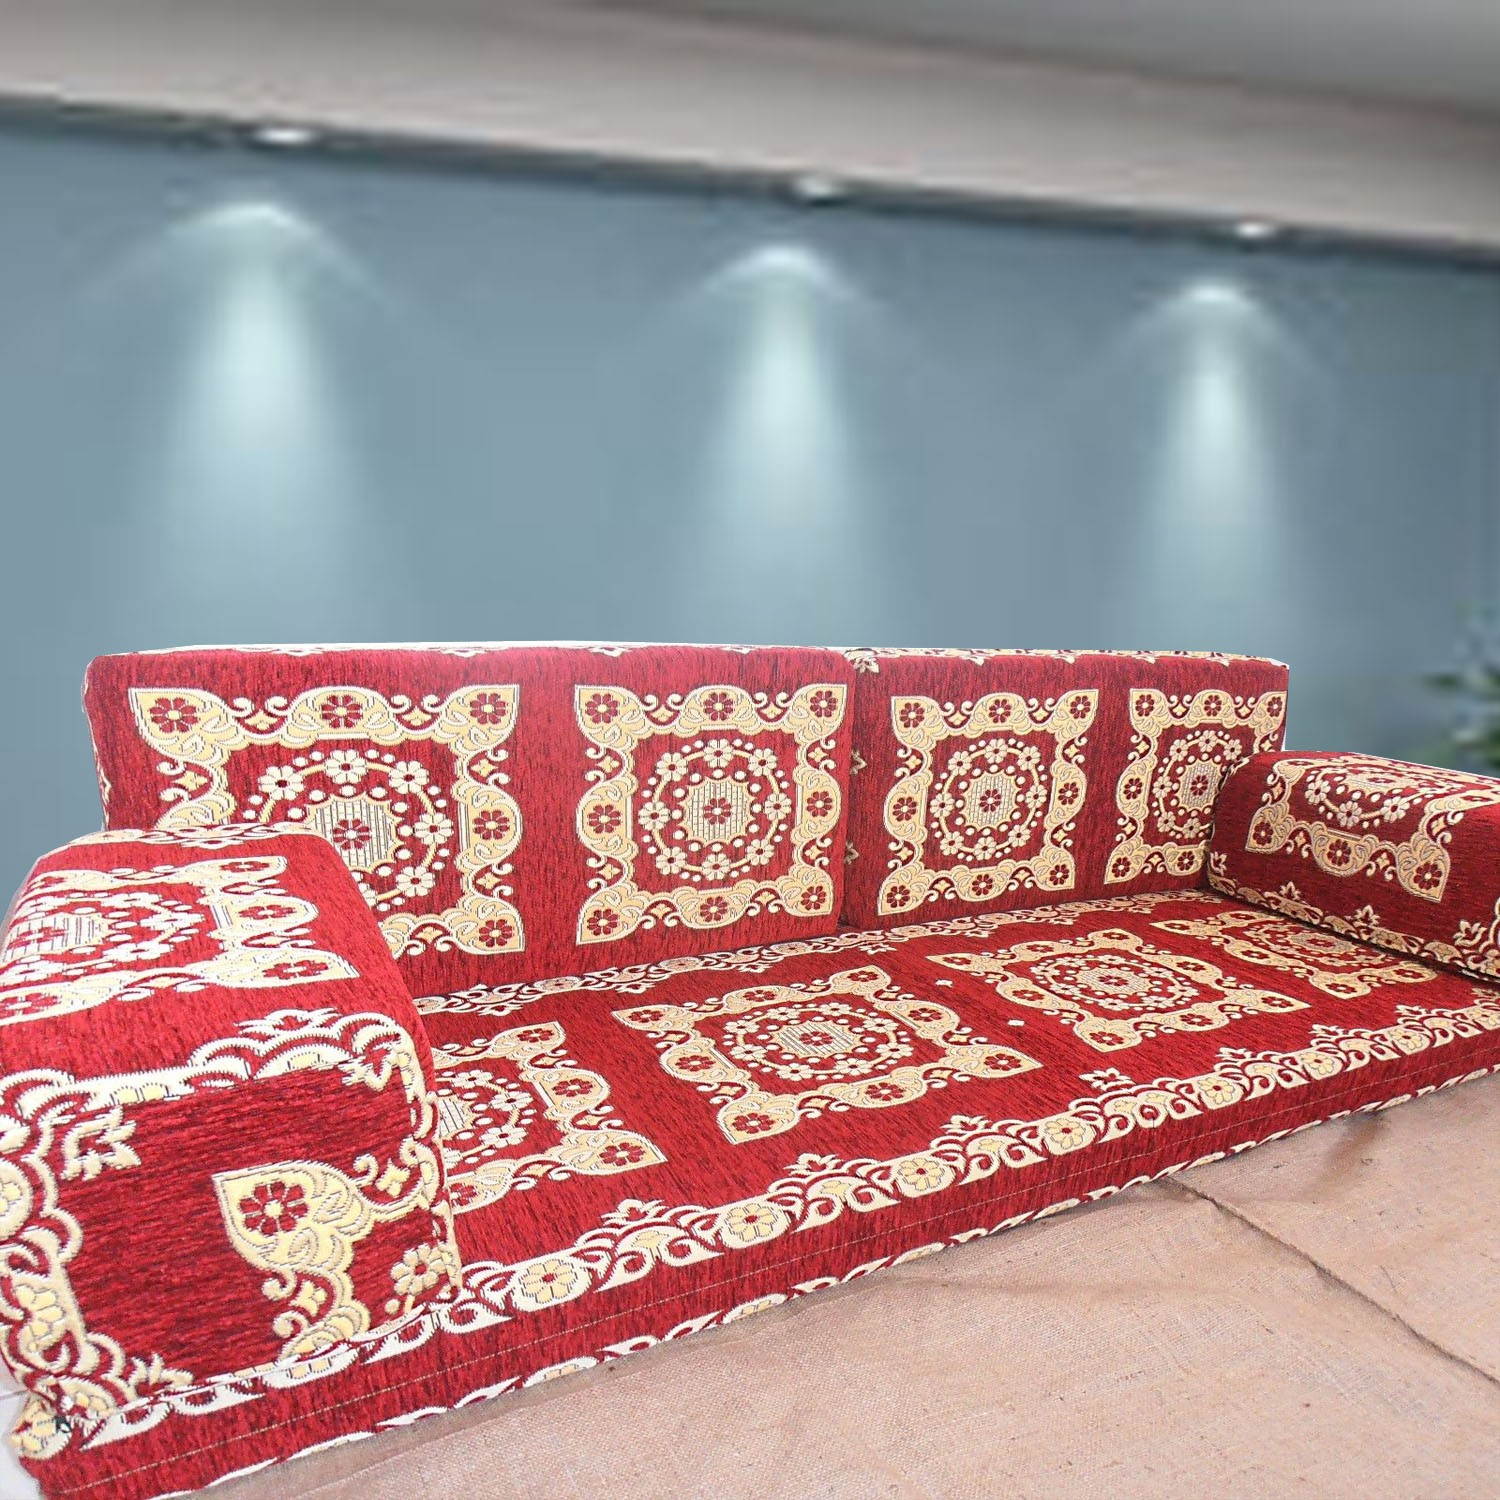 Floor sofa with double back pillows - SHI_FS203